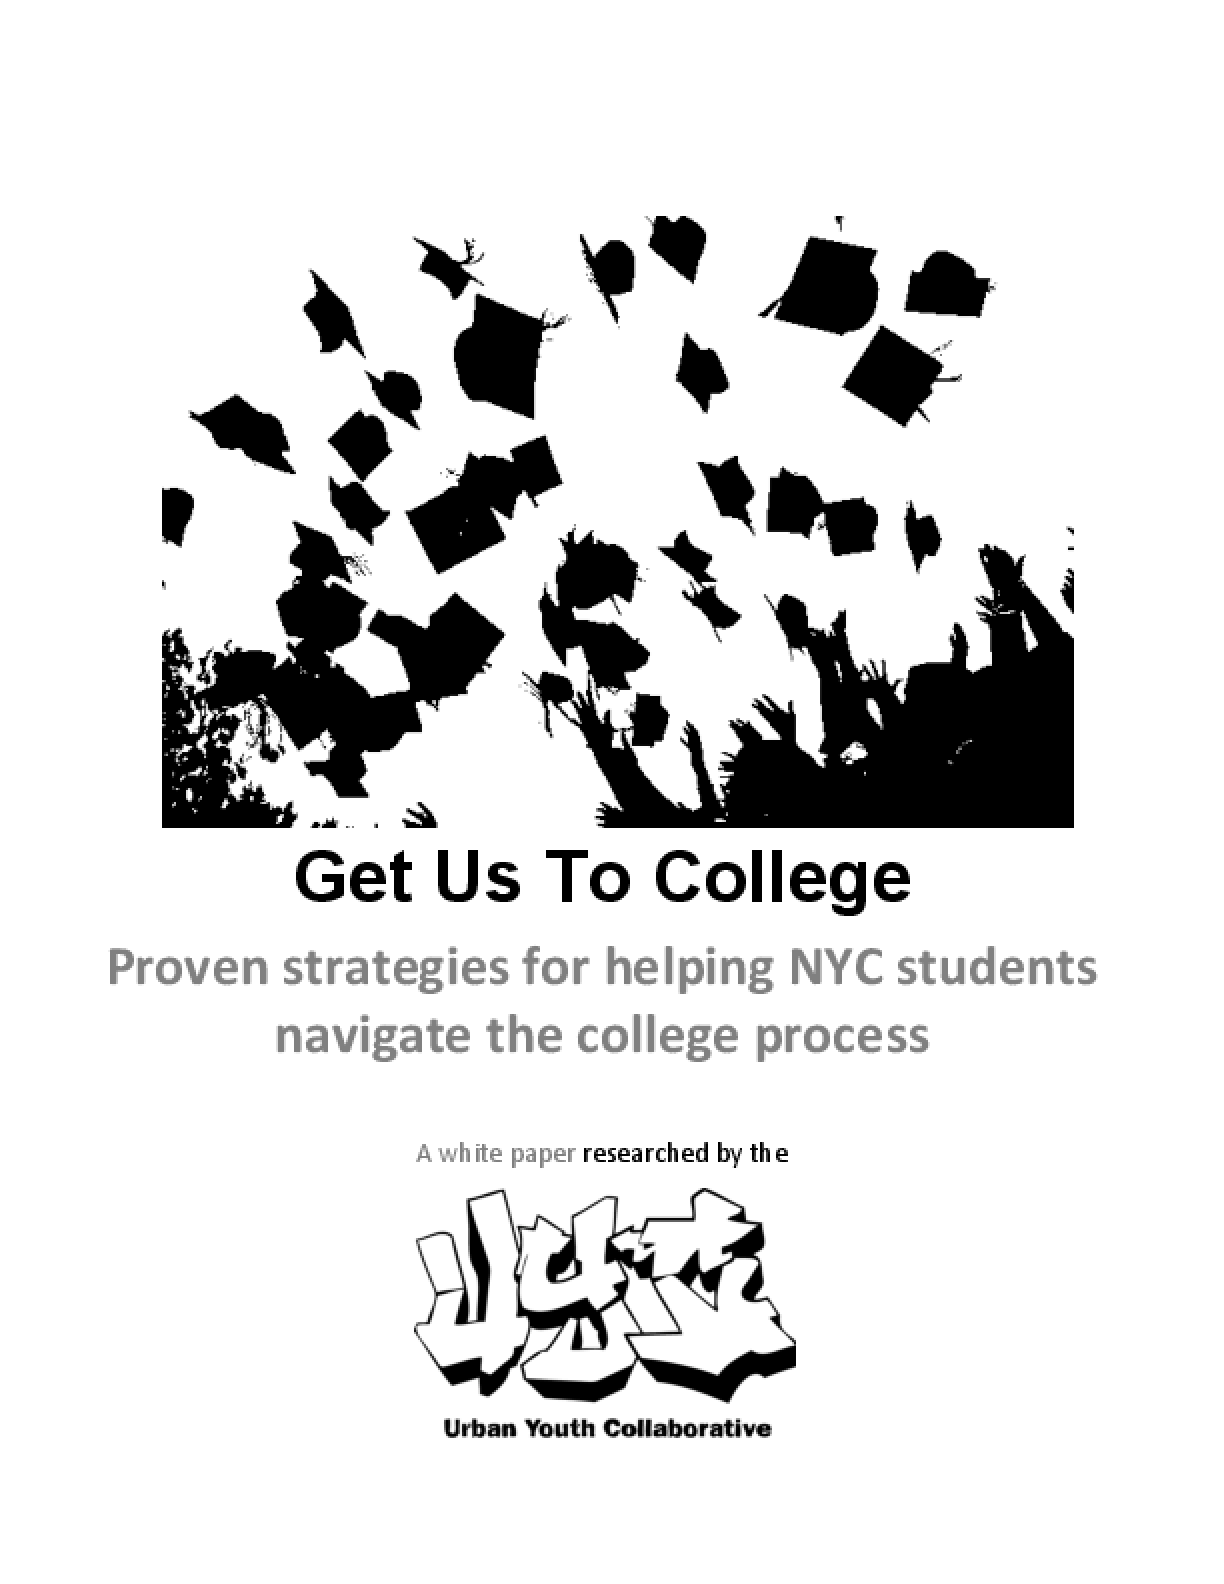 Get Us To College: Proven Strategies for Helping NYC students Navigate the College Process